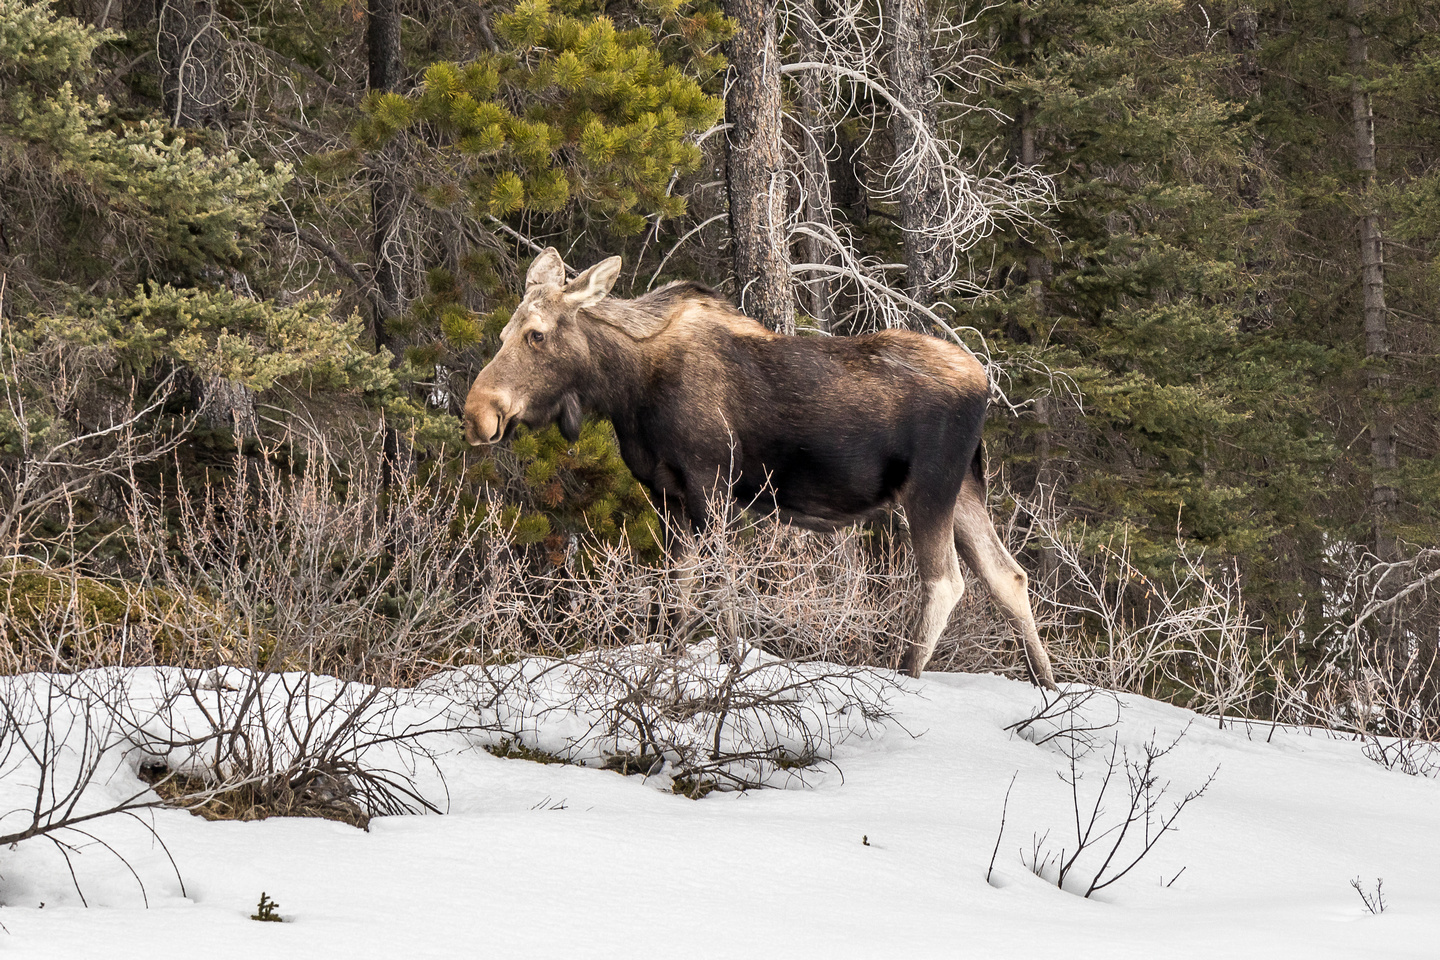 The three moose near my truck weren't so easily avoided. But I managed to talk them off the road eventually.